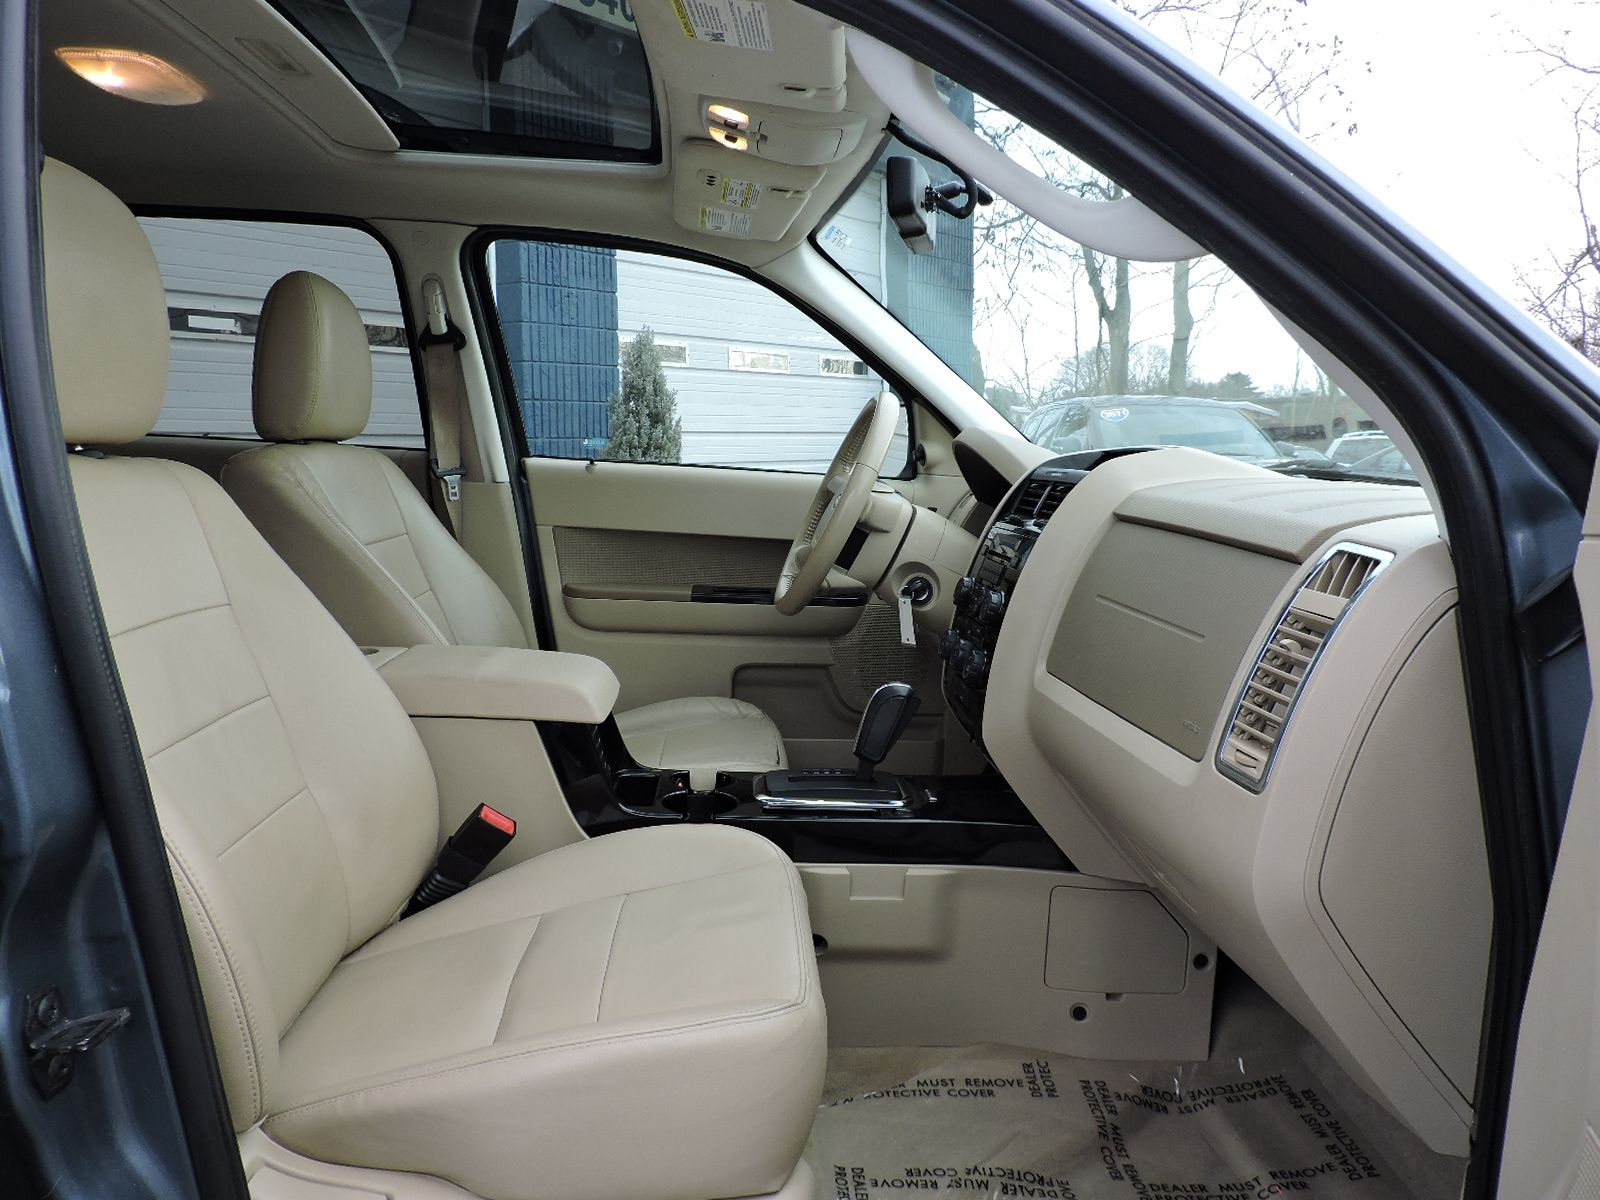 2011 Ford Escape - Limited Edition - All Wheel Drive